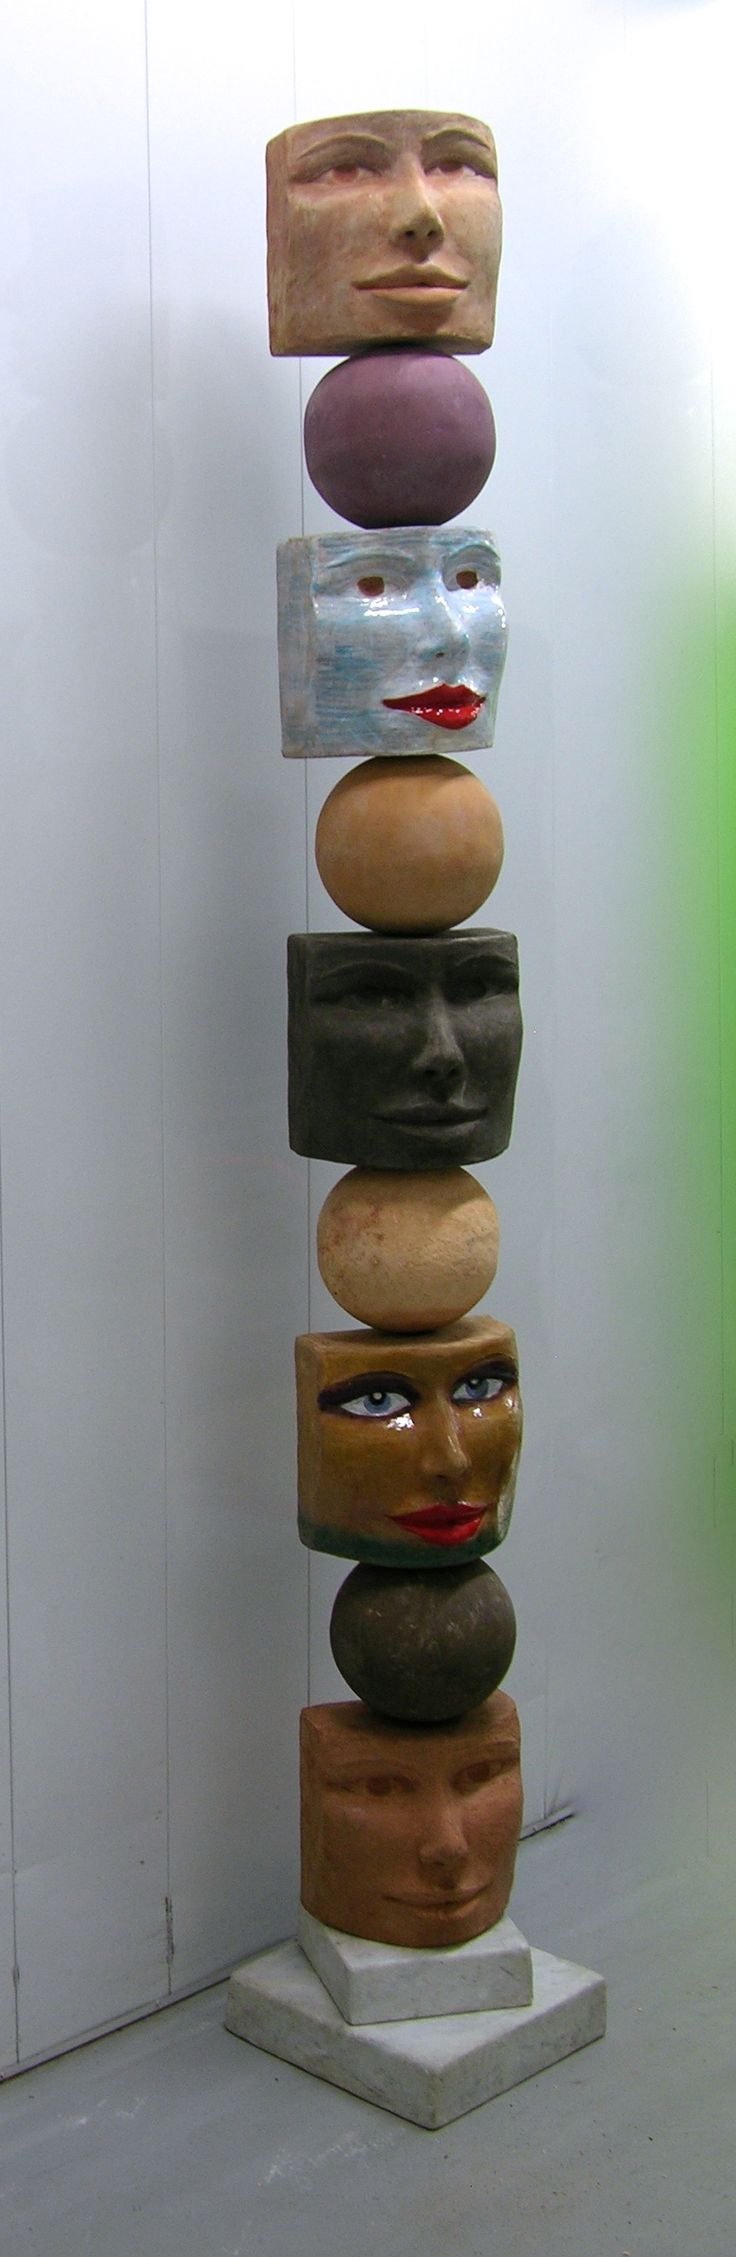 Contemporary Italian Totem Organic Sculpture by Ginestroni image 10